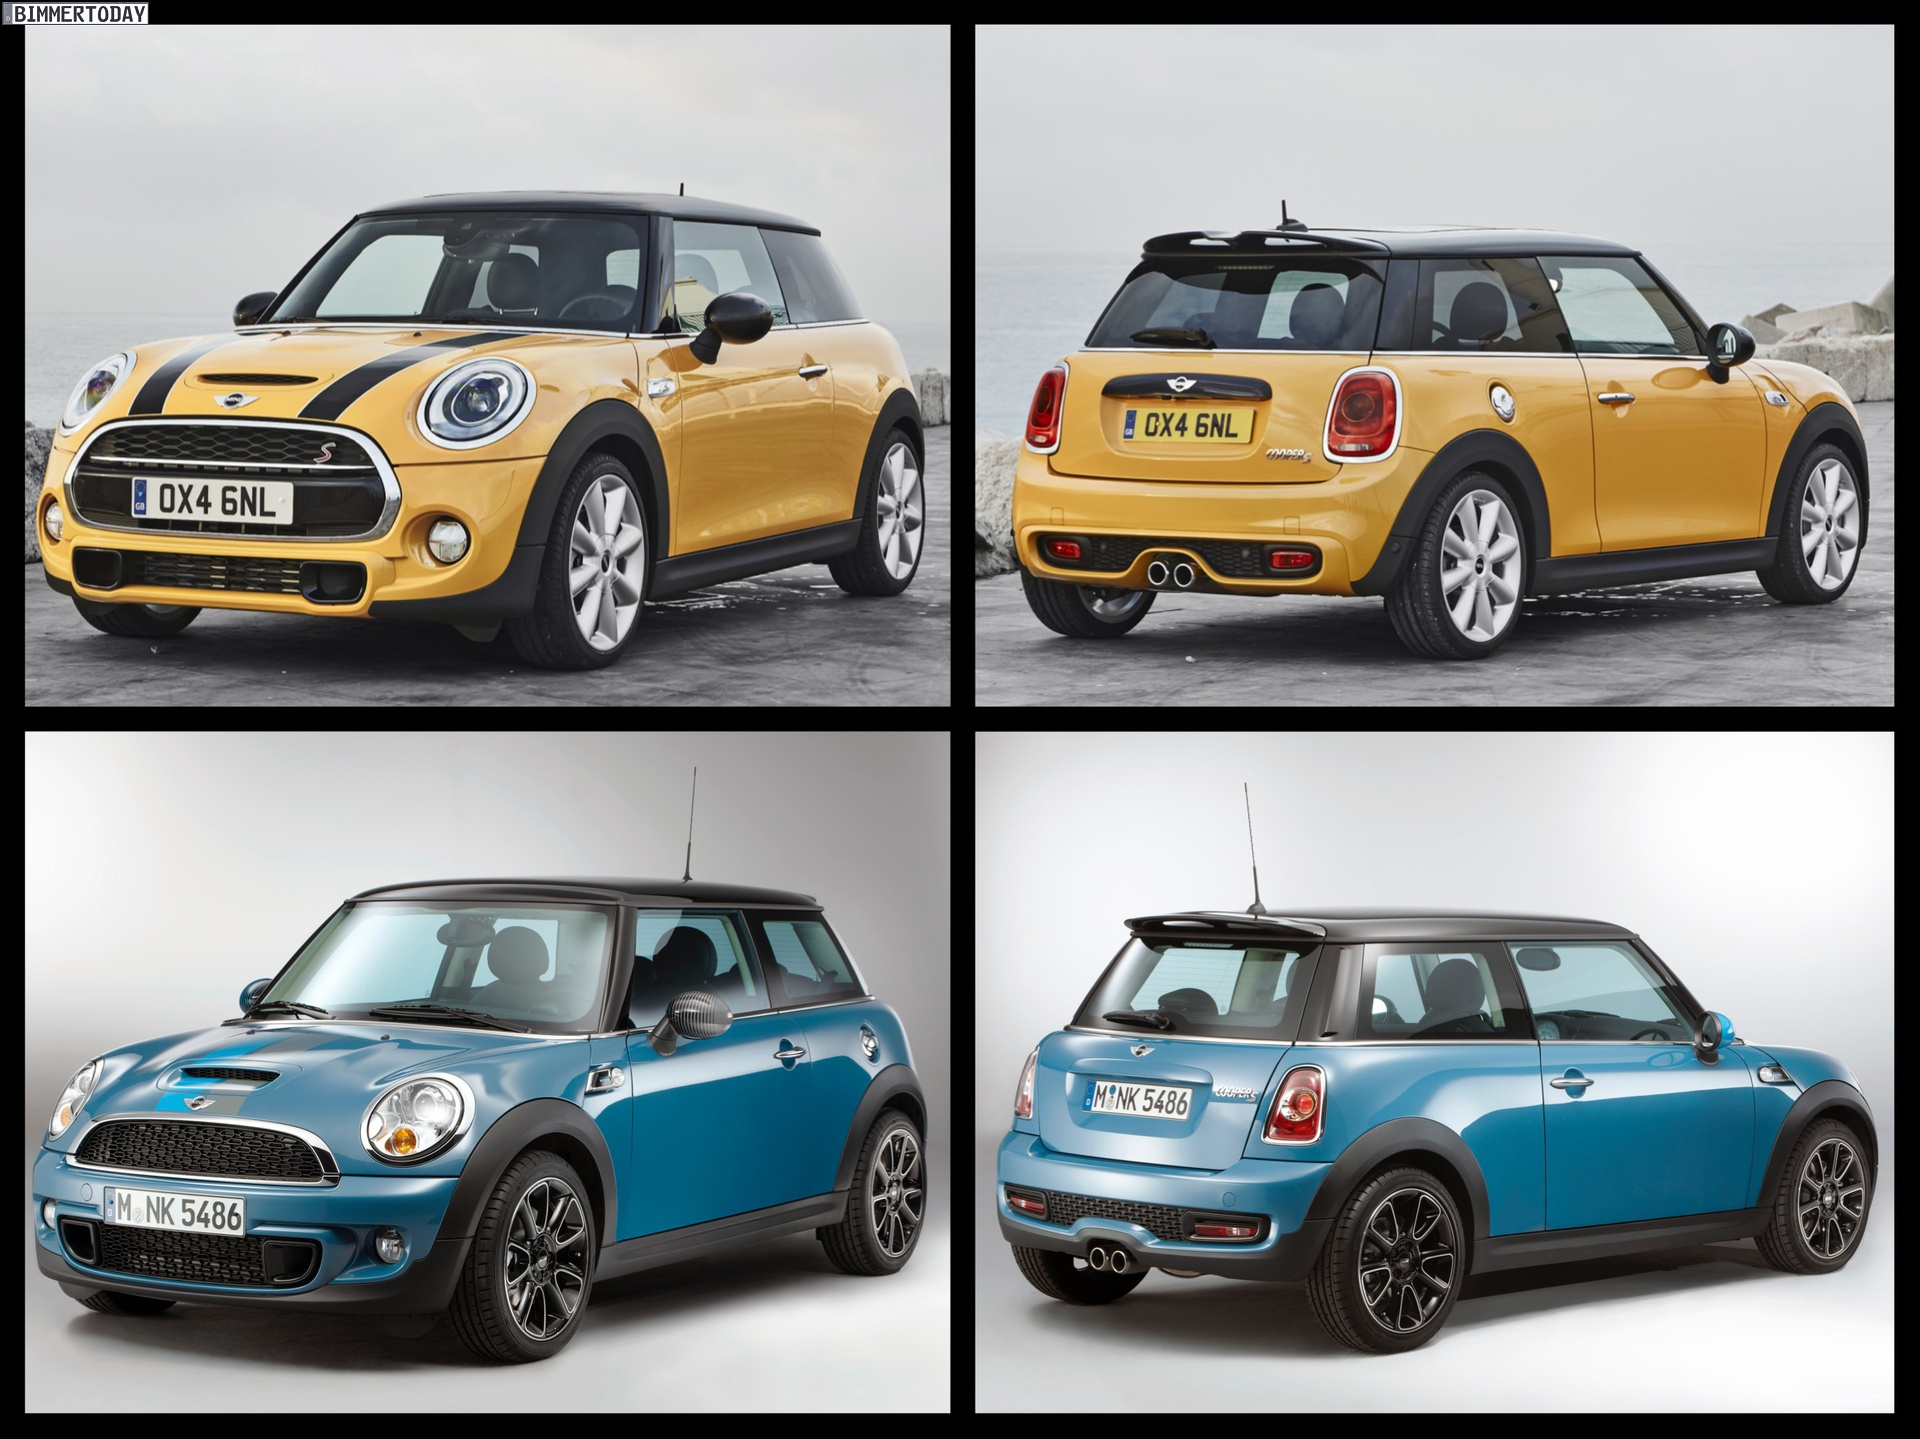 F56 Mini Vs R56 Mini Photo Comparison